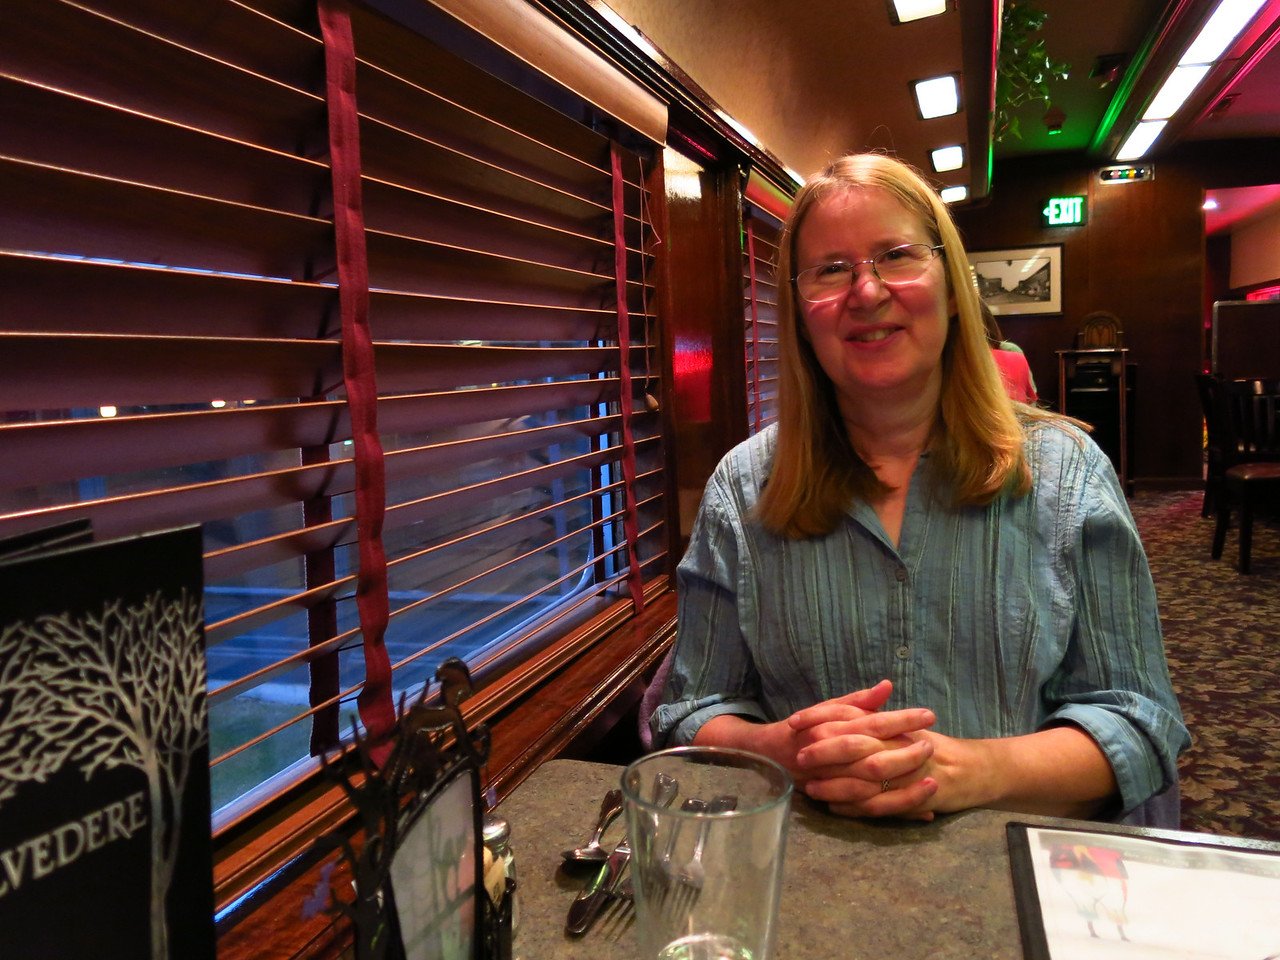 Mary is waiting for her dinner.   We had a good walk in Walla Walla.  On the following morning, Friday, October 12, we drove east on US Highway 12 to Dayton, Washington.